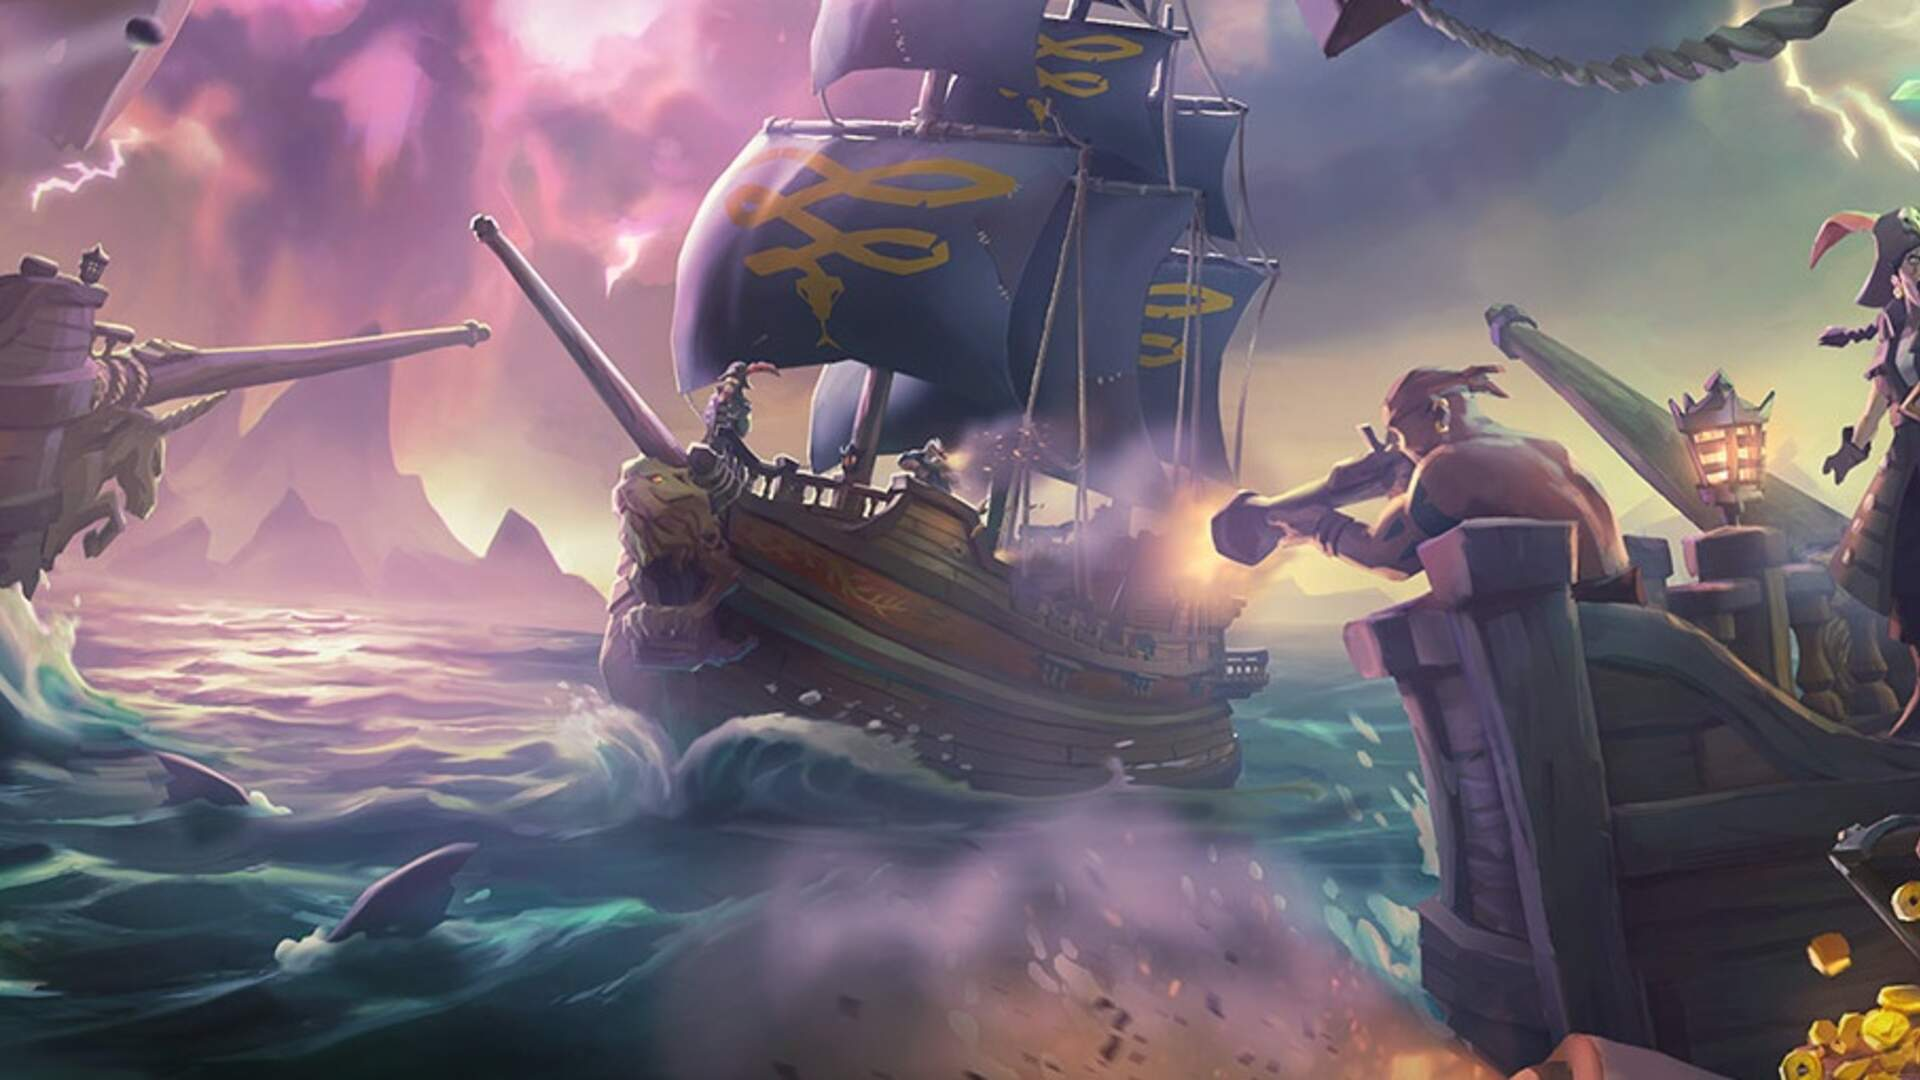 Sea of Thieves Kraken Guide - How to Find the Kraken Location, How to Defeat the Kraken